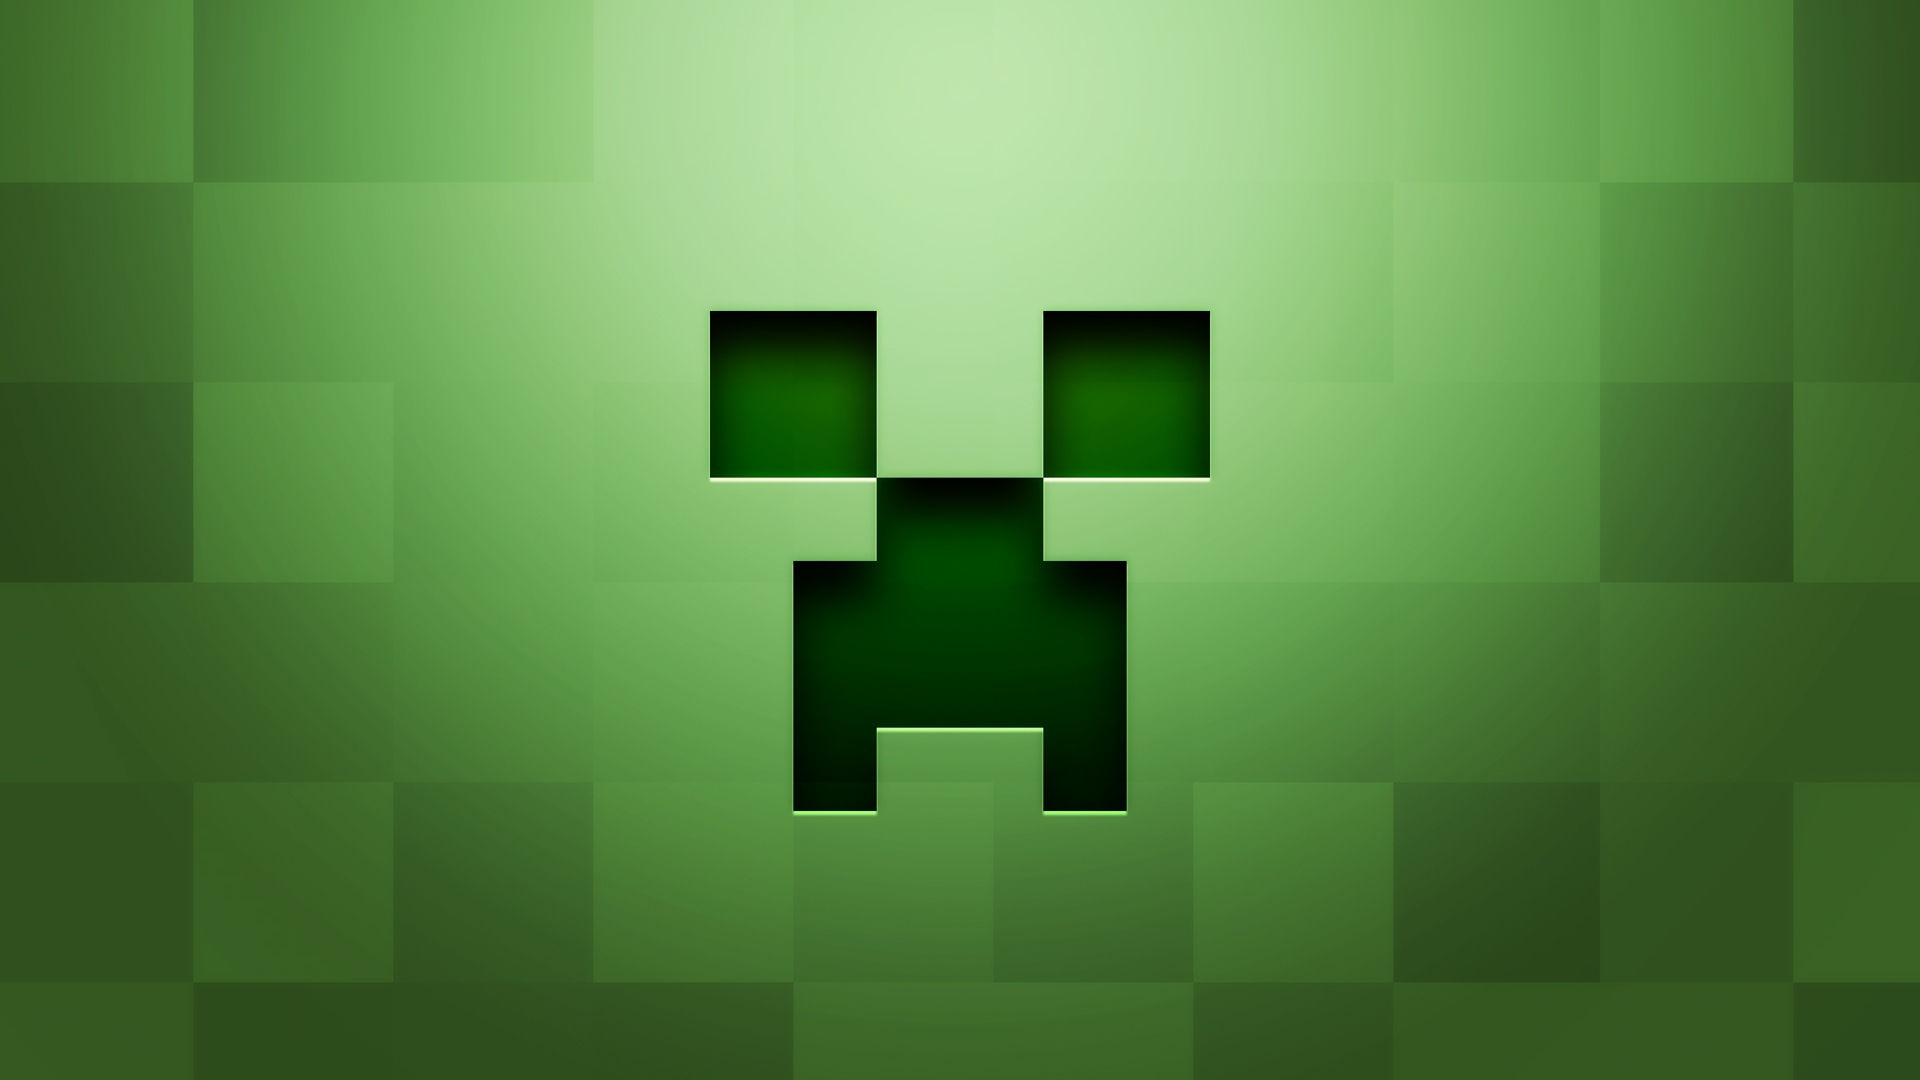 Minecraft Background Green Wallpaper